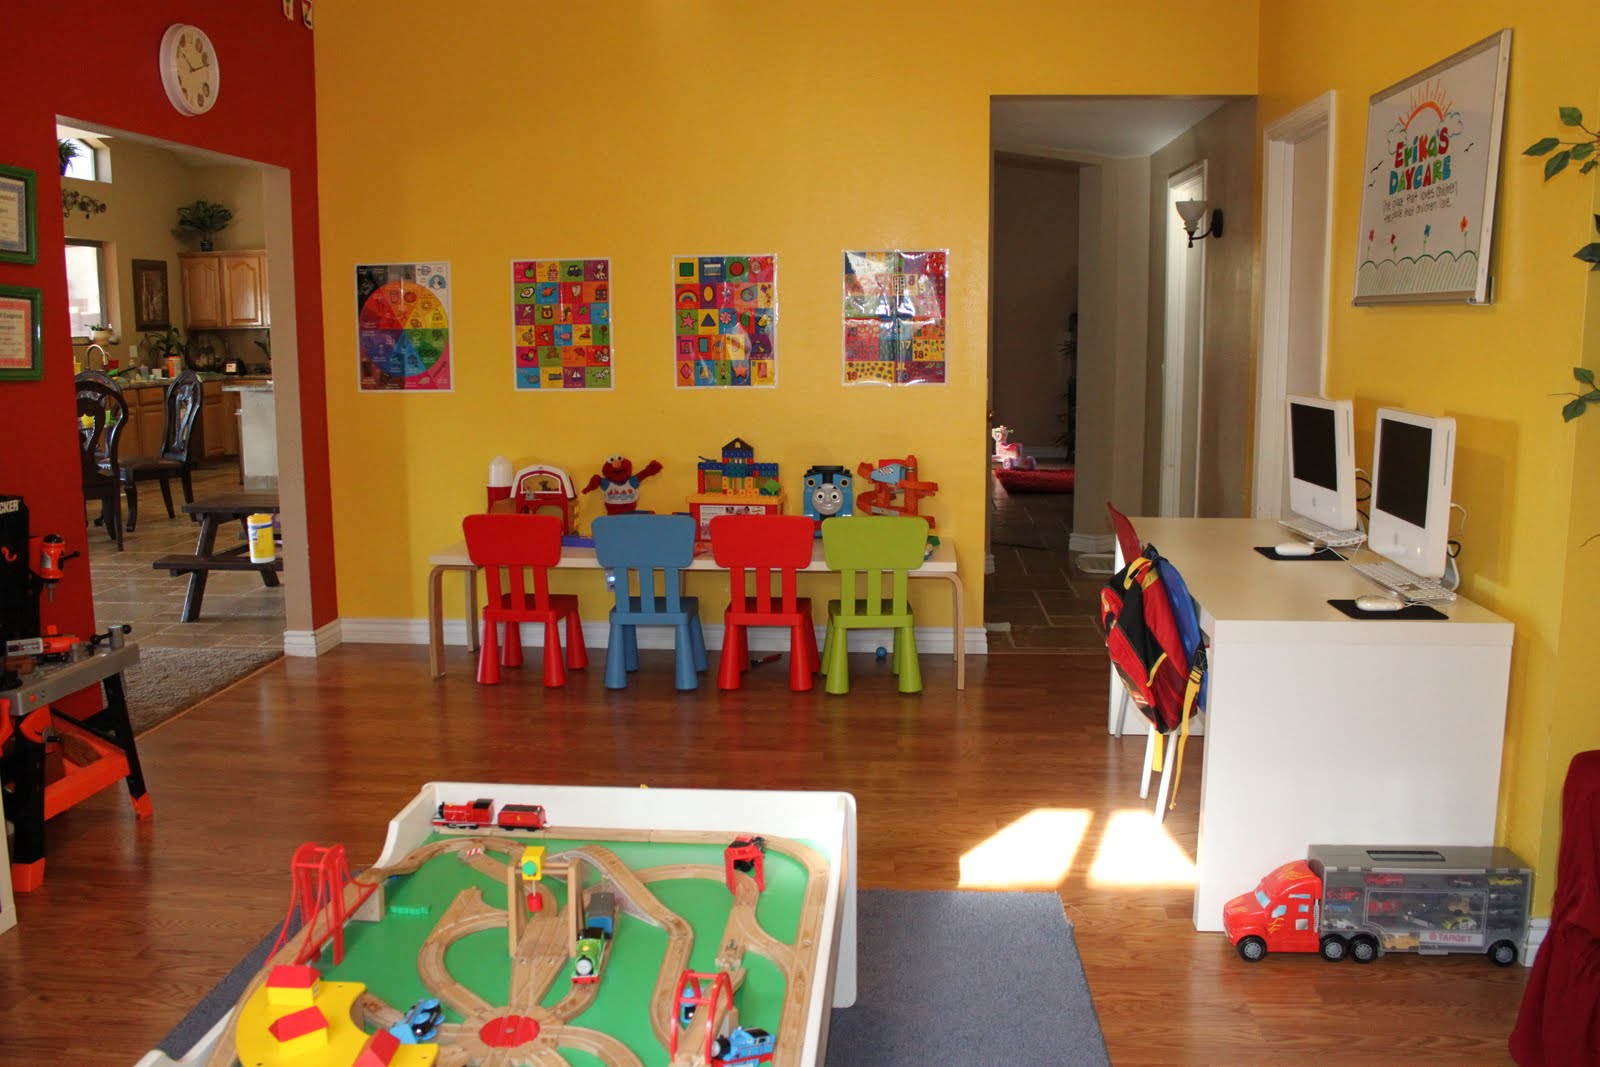 Home Daycare Ideas For Decorating Part - 21: Pictures Of Home Daycares